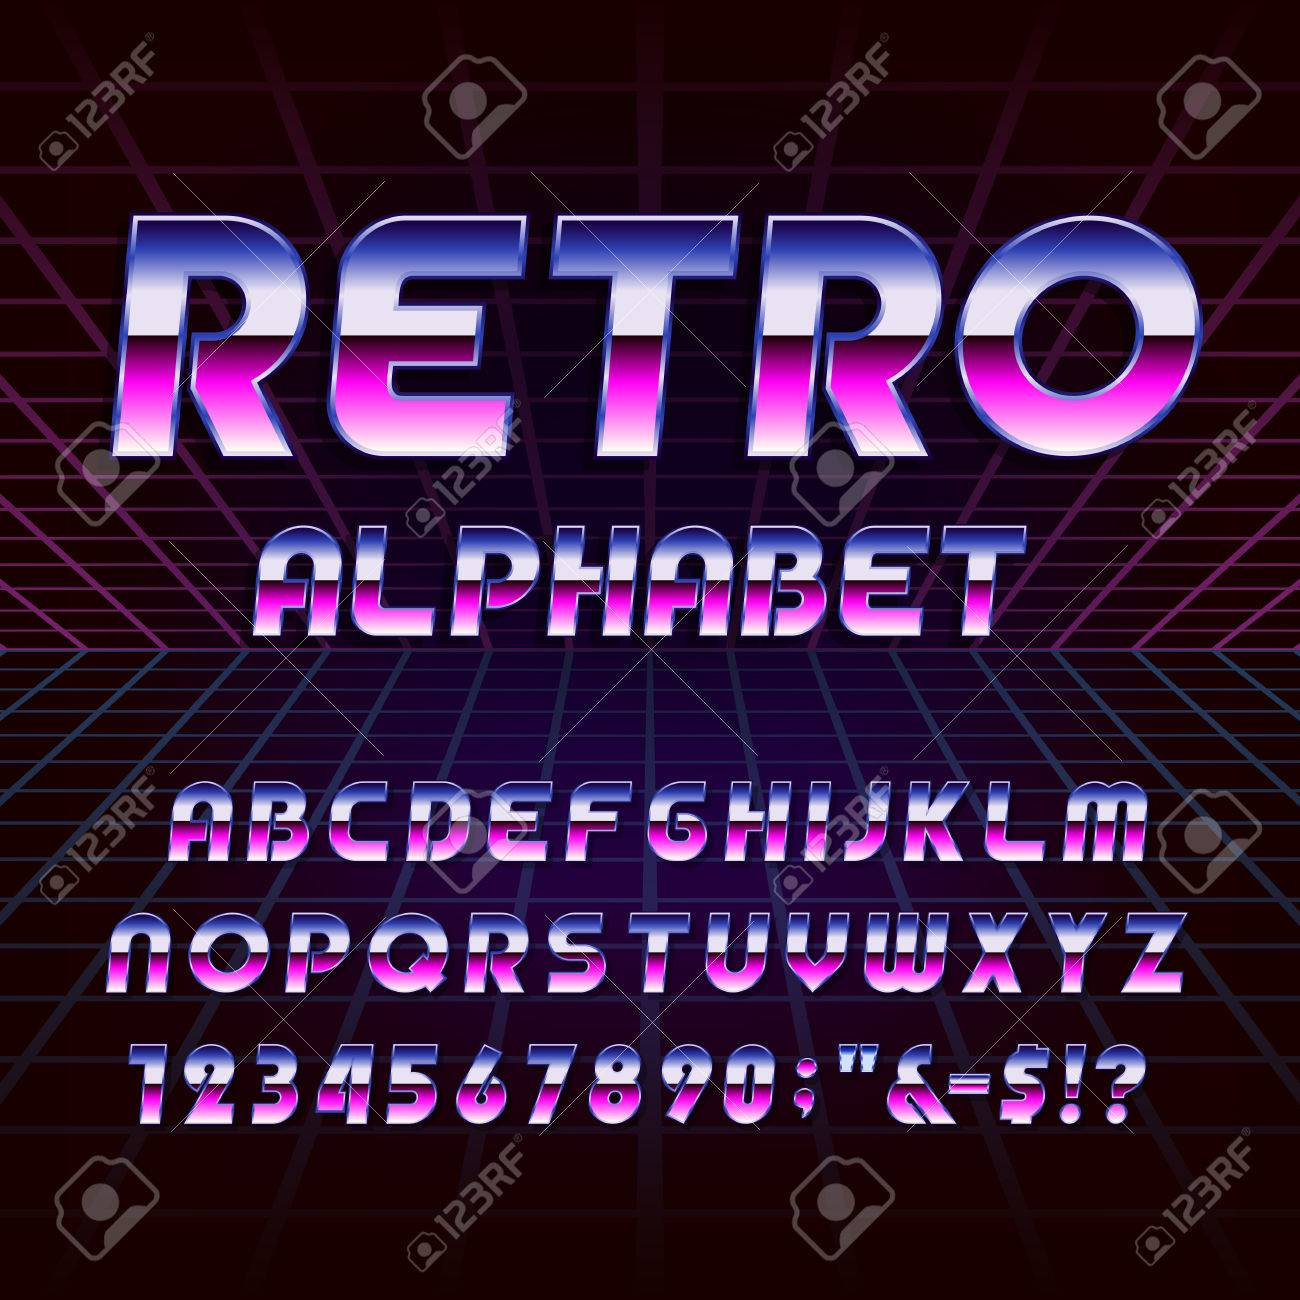 80's retro alphabet vector font. Metallic effect letters and numbers on the 80's style background. Vector typography for flyers, headlines, posters etc. - 52897949